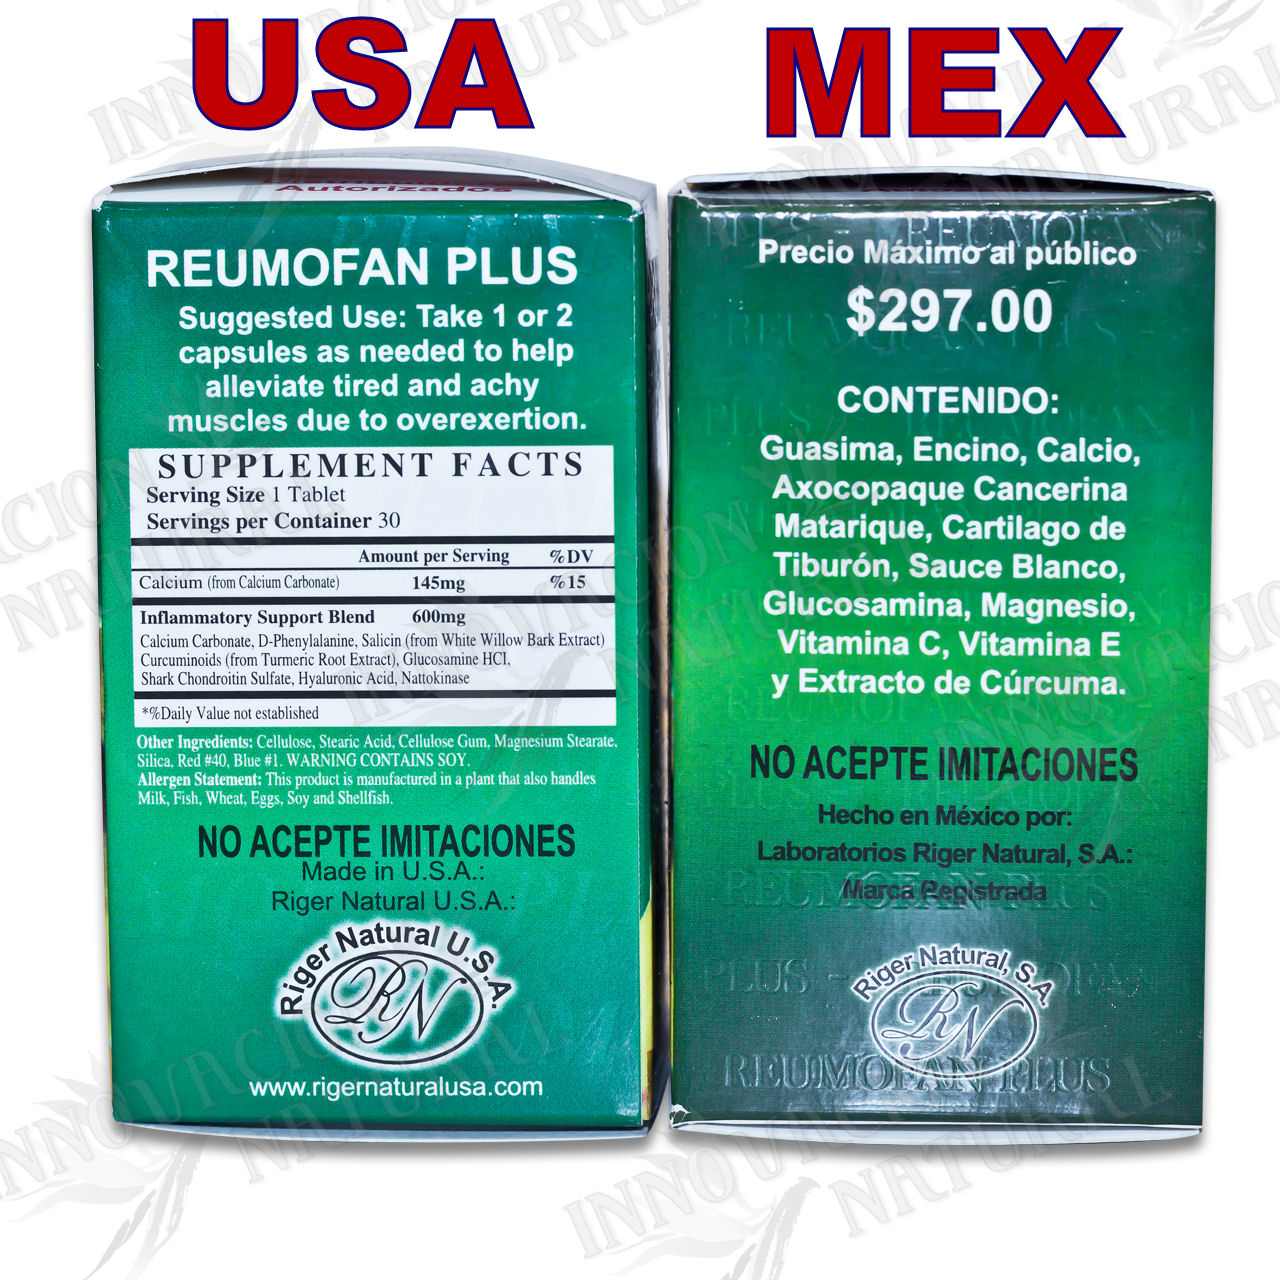 Reumofan Plus Ingredients